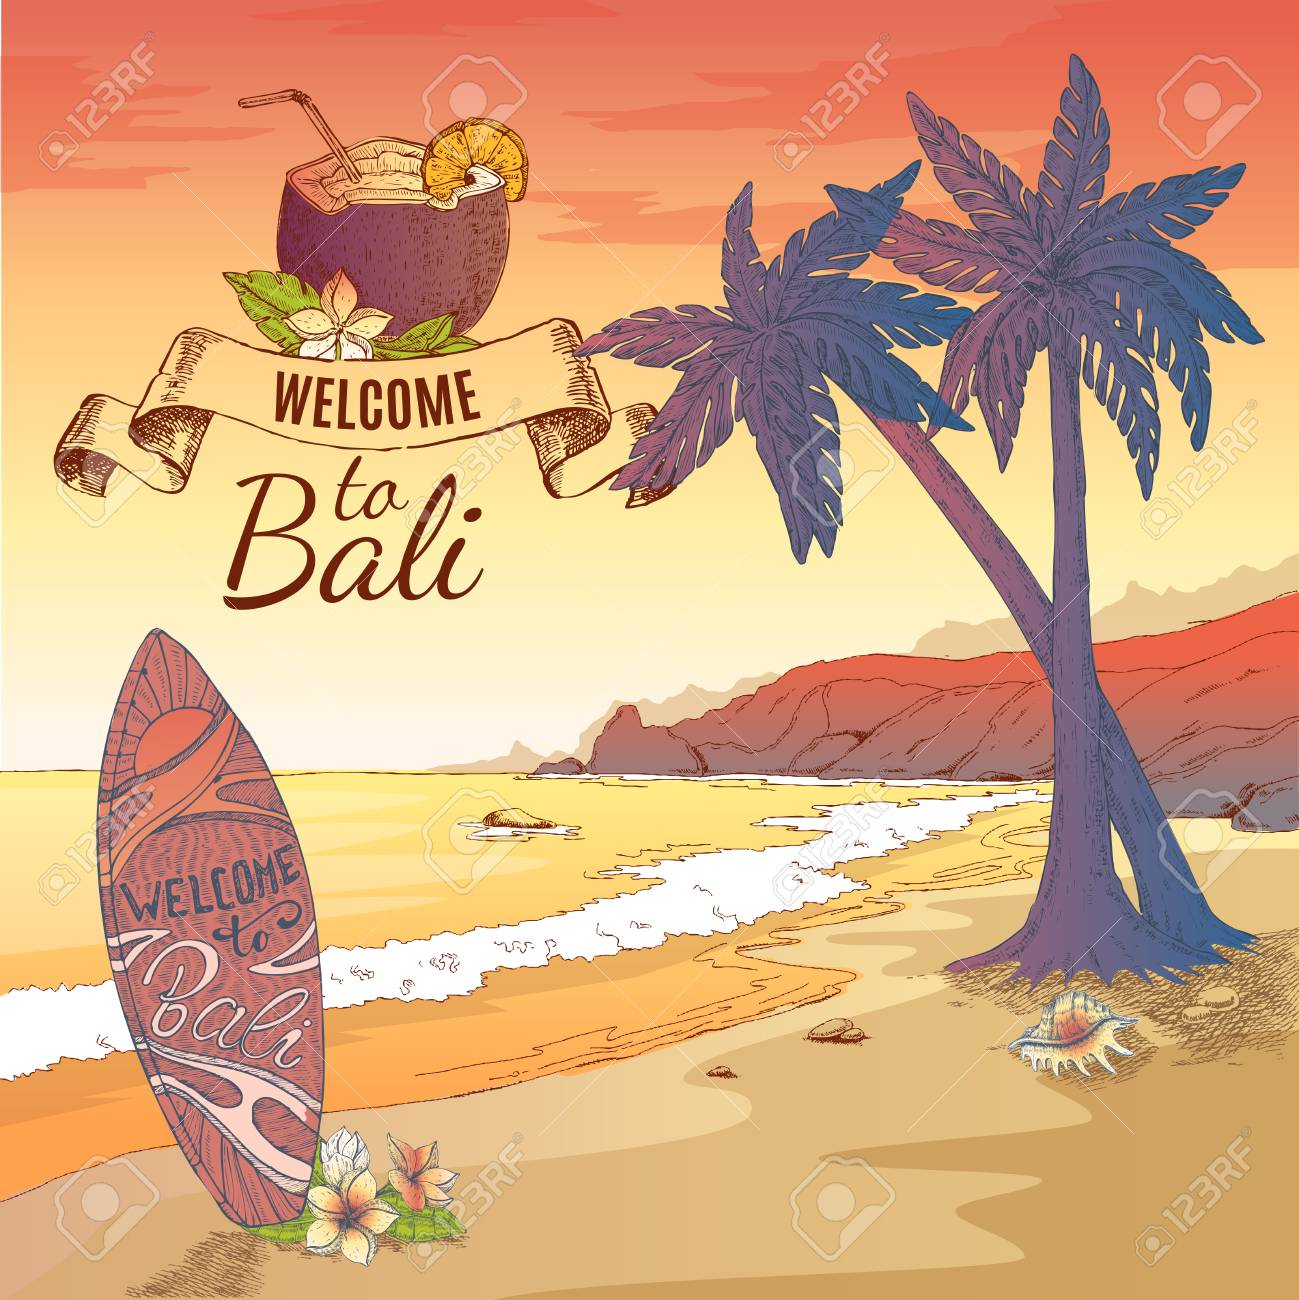 Welcome to bali background royalty free cliparts vectors and stock vector welcome to bali background thecheapjerseys Gallery